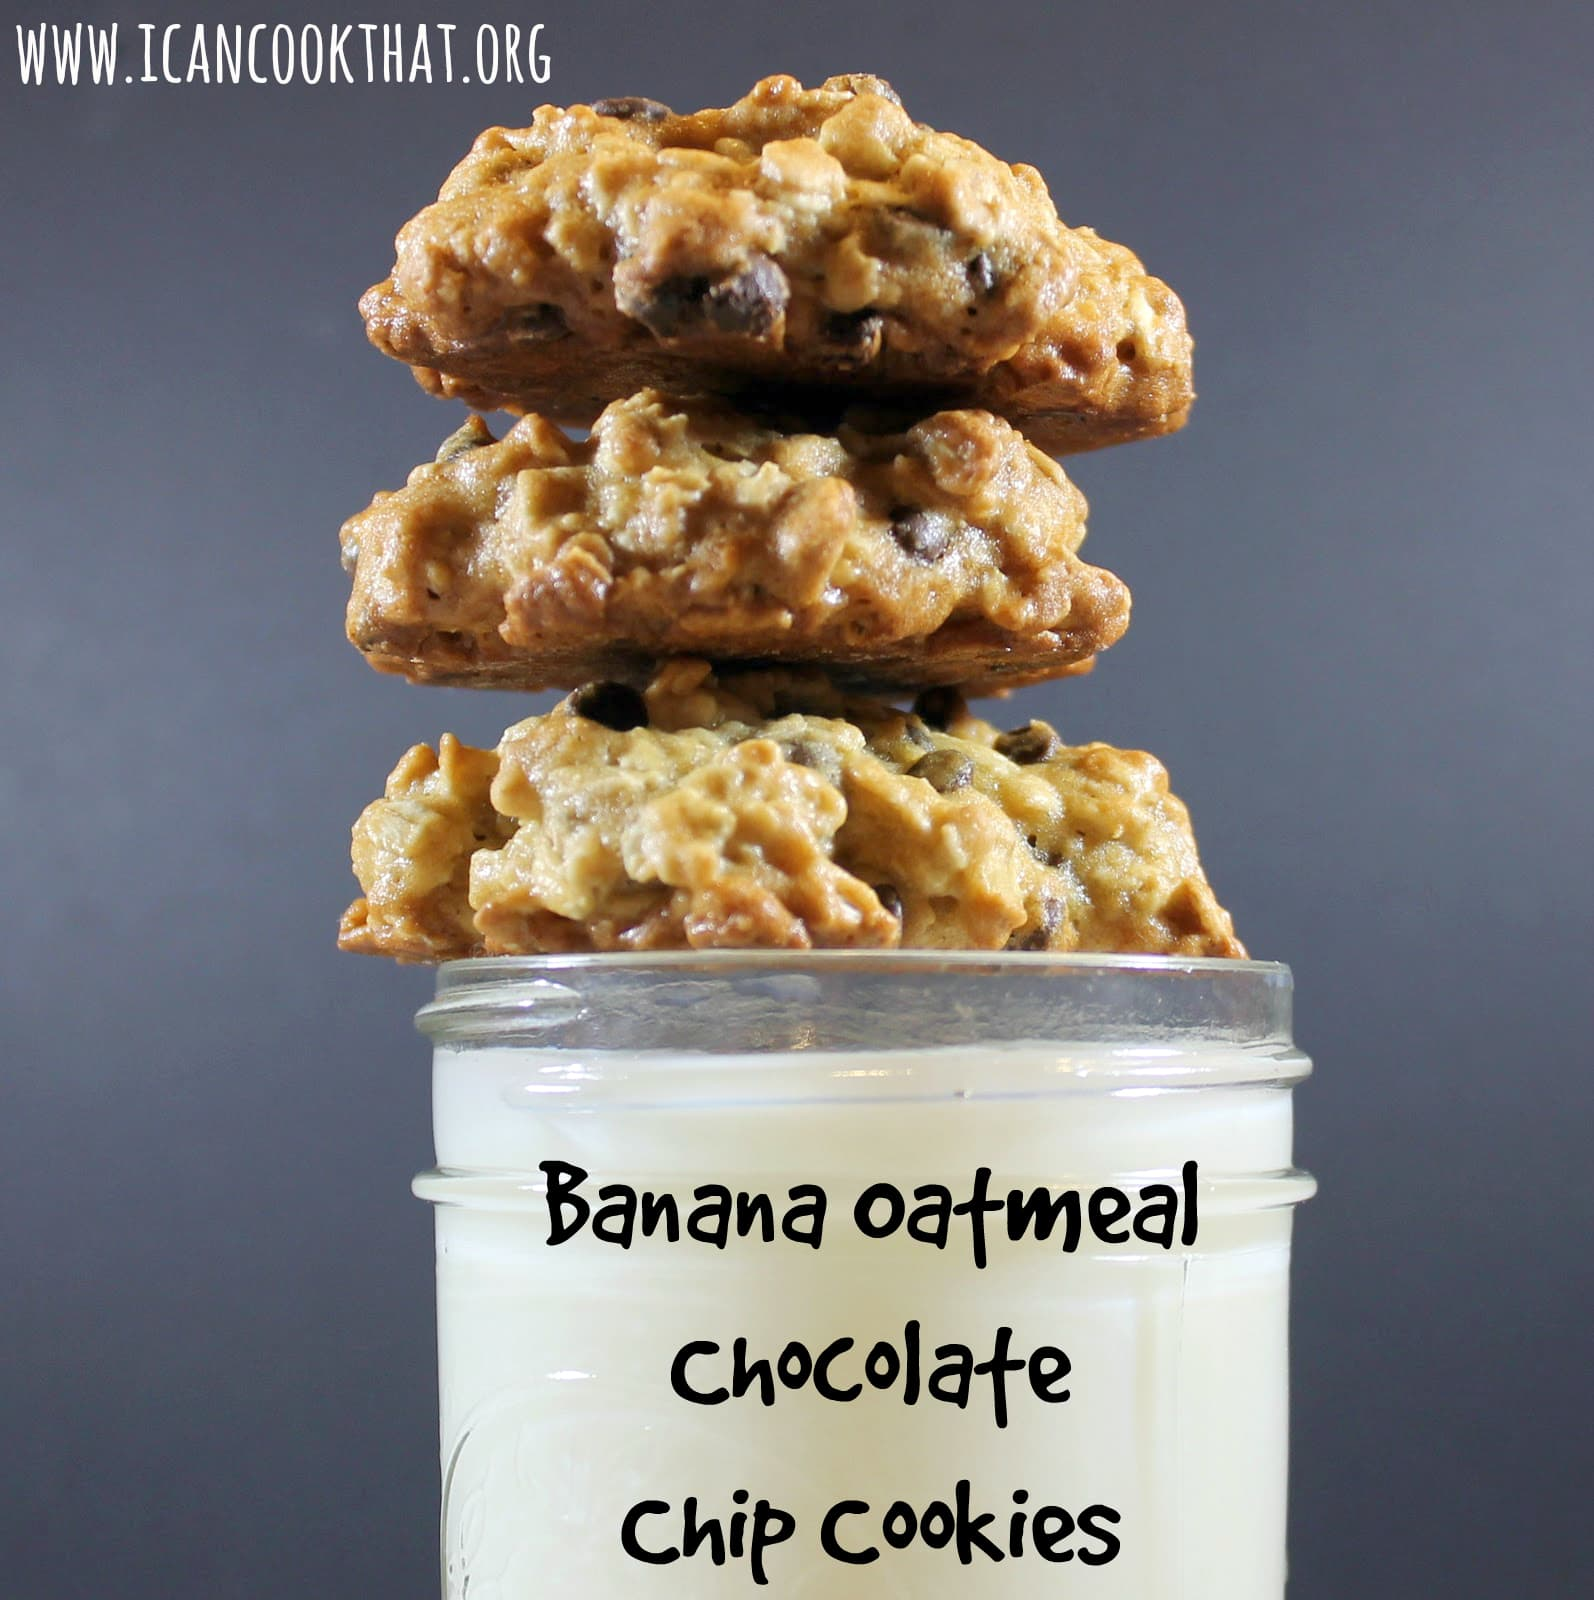 Banana-Oatmeal Chocolate Chip Cookies Recipe | I Can Cook That